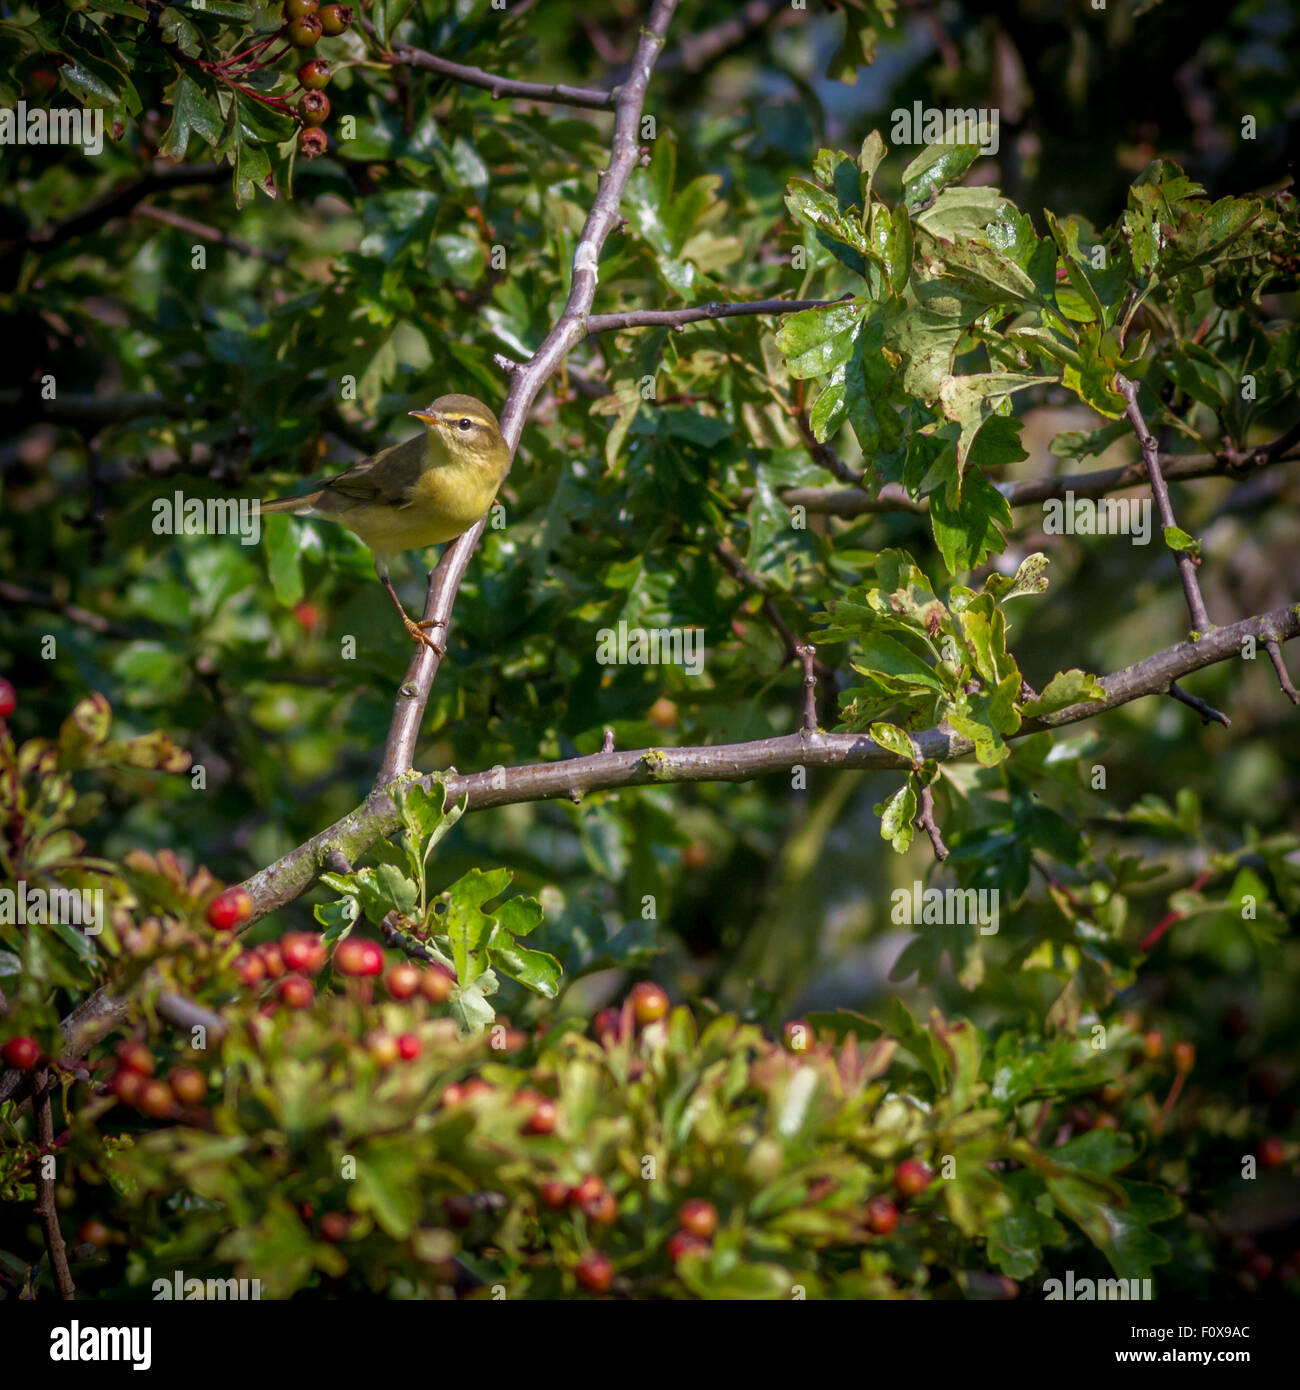 Chiffchaff taking a short break between flitting in and out of the branches looking for insects. - Stock Image